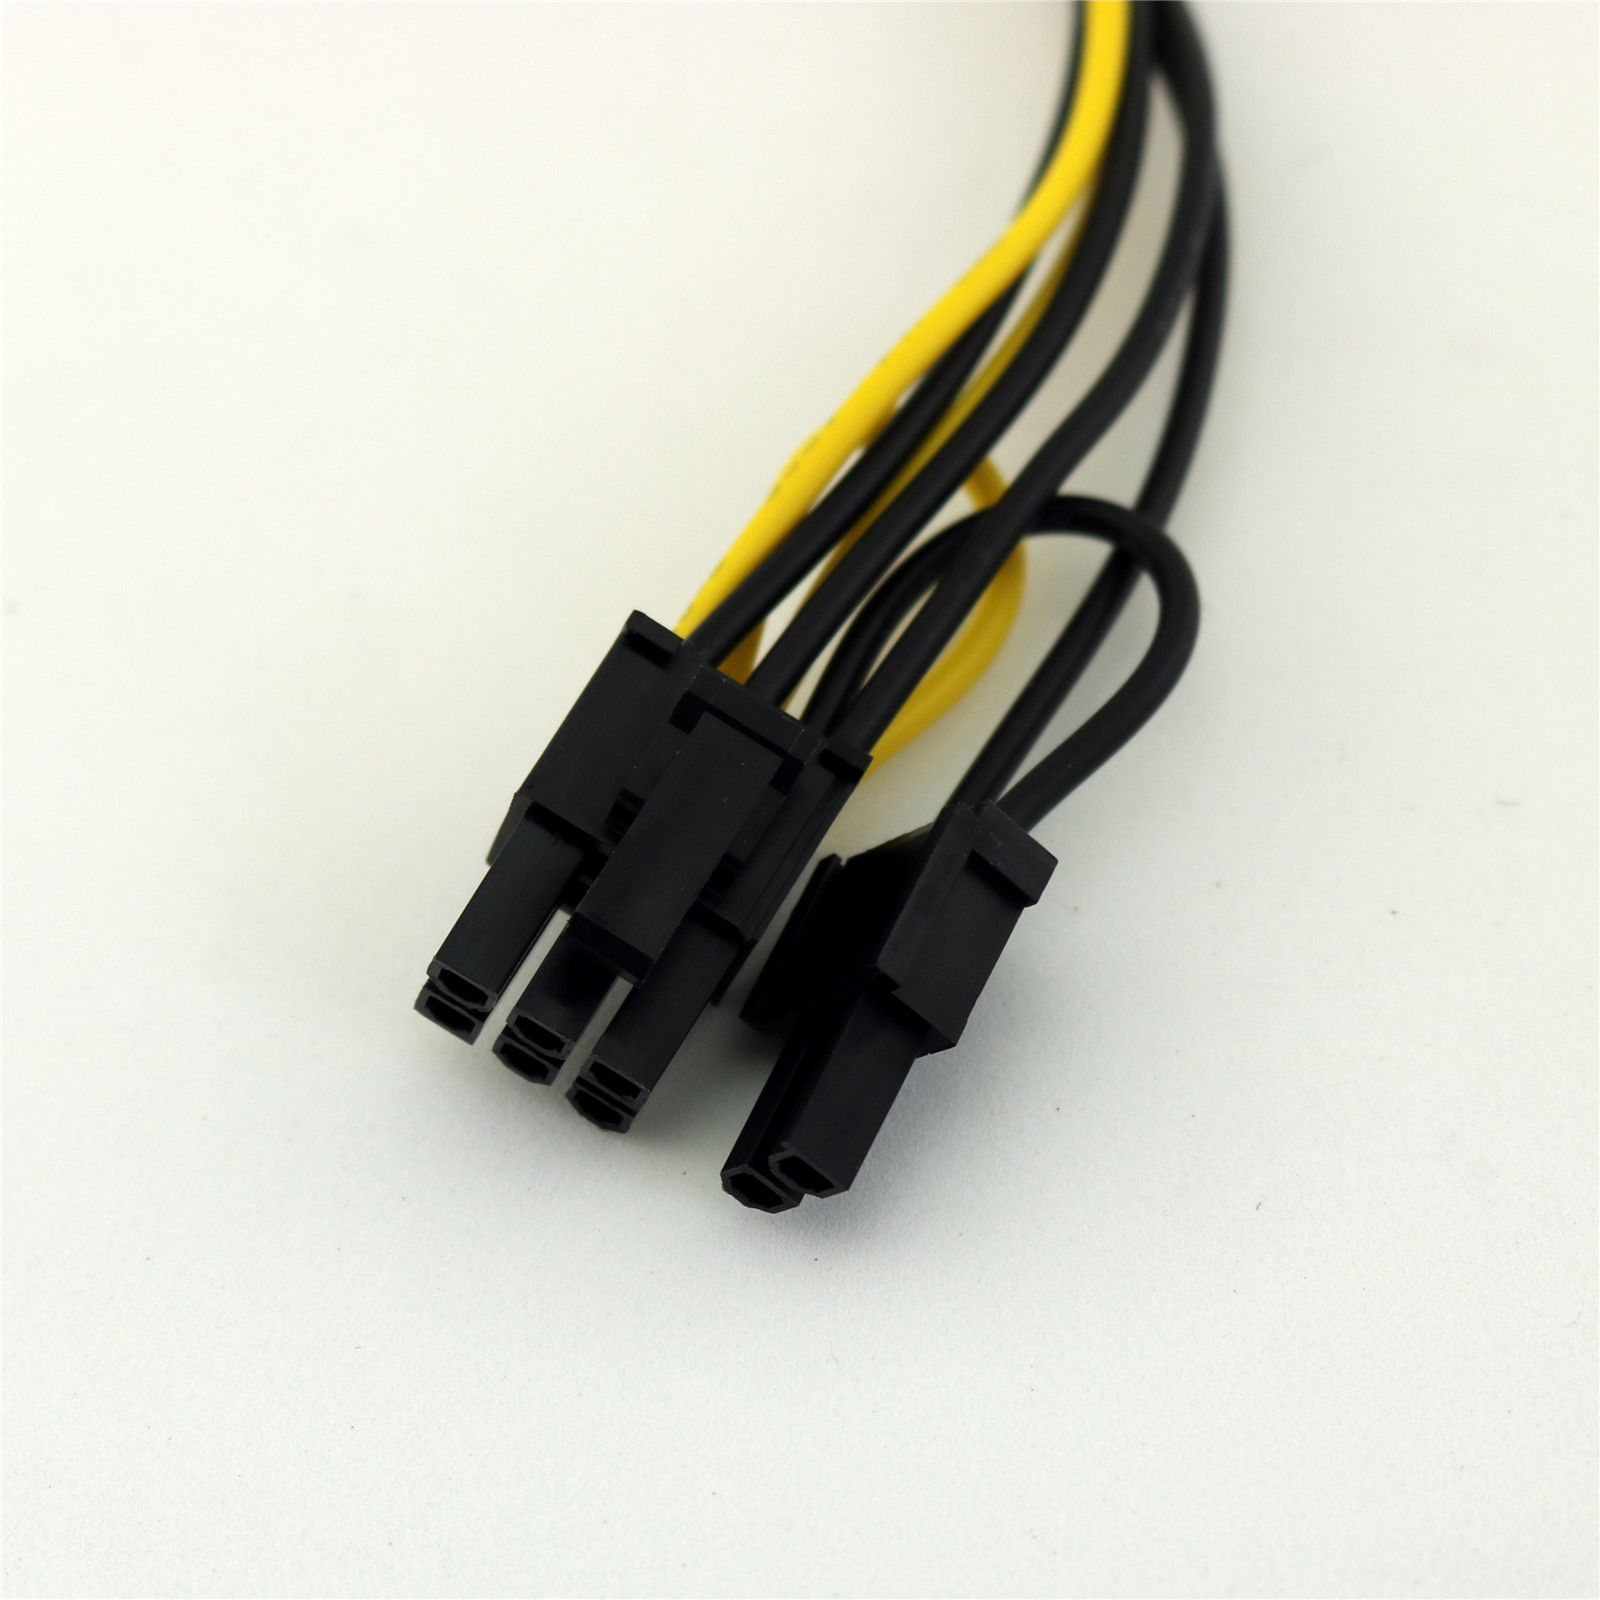 15 Pin SATA Male to ( 6+2 ) 8 pin PCIE Female Power Converter Cable